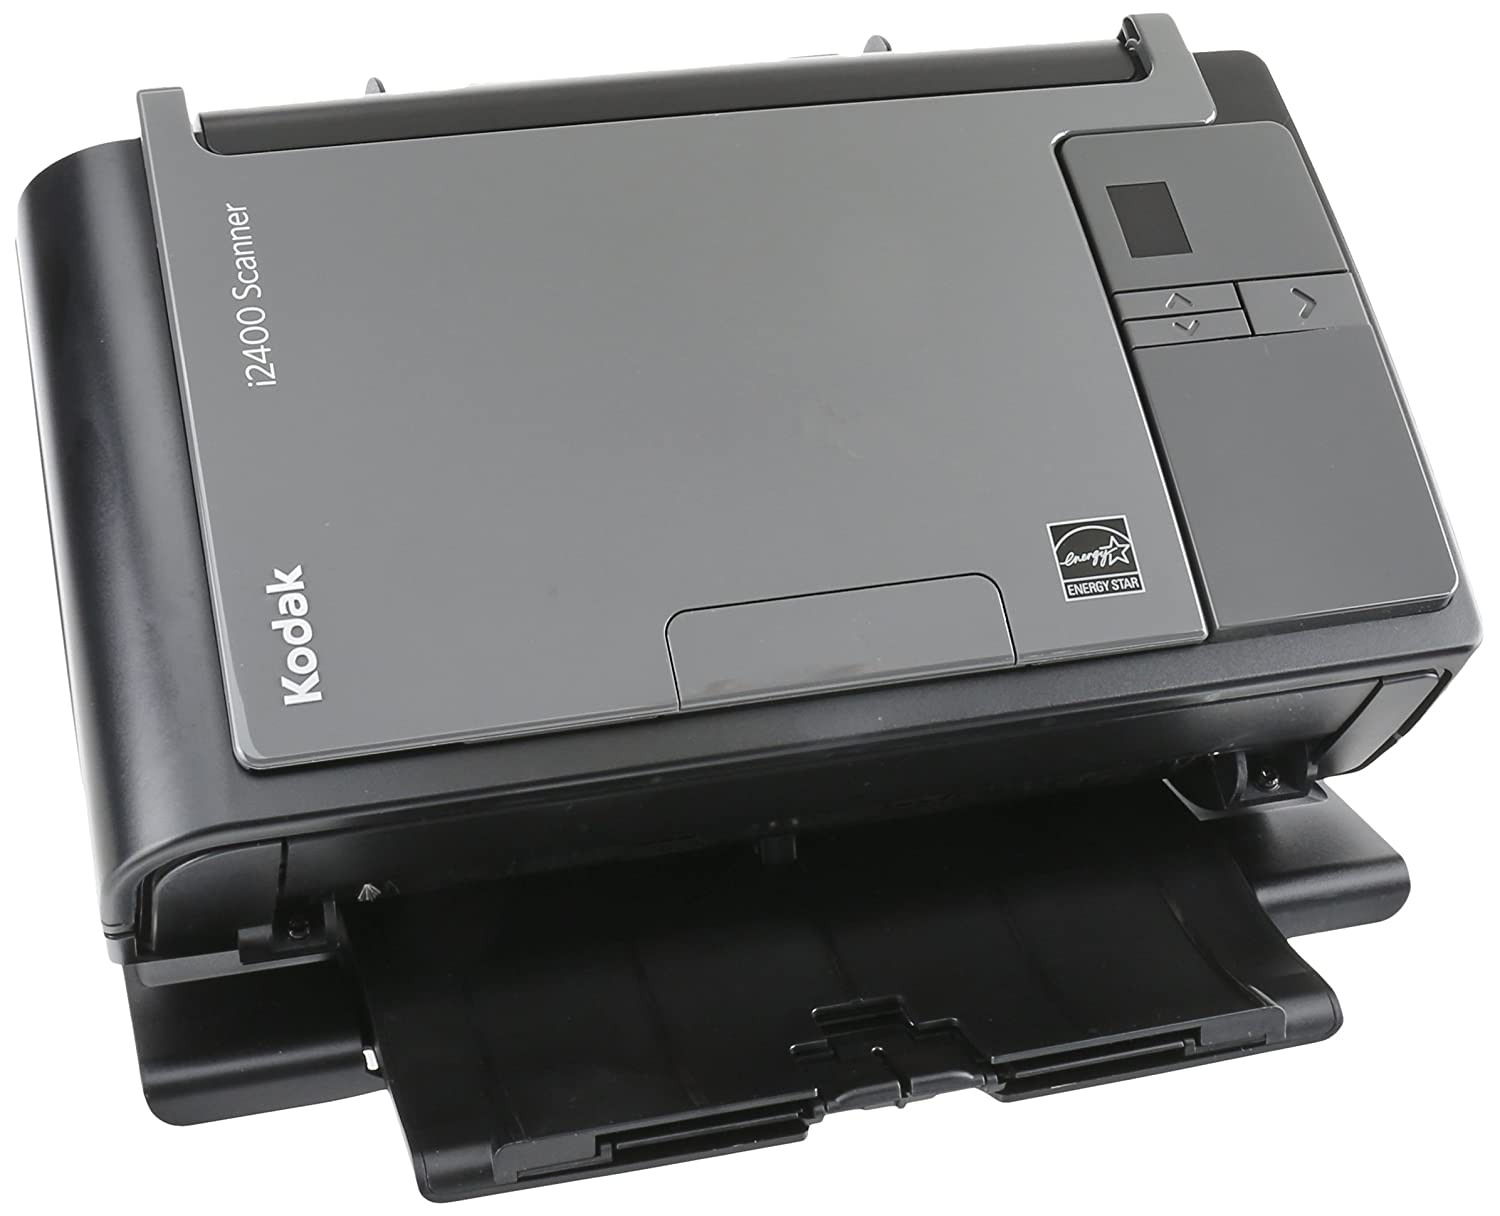 KODAK SCANNER I2400 WINDOWS 10 DOWNLOAD DRIVER